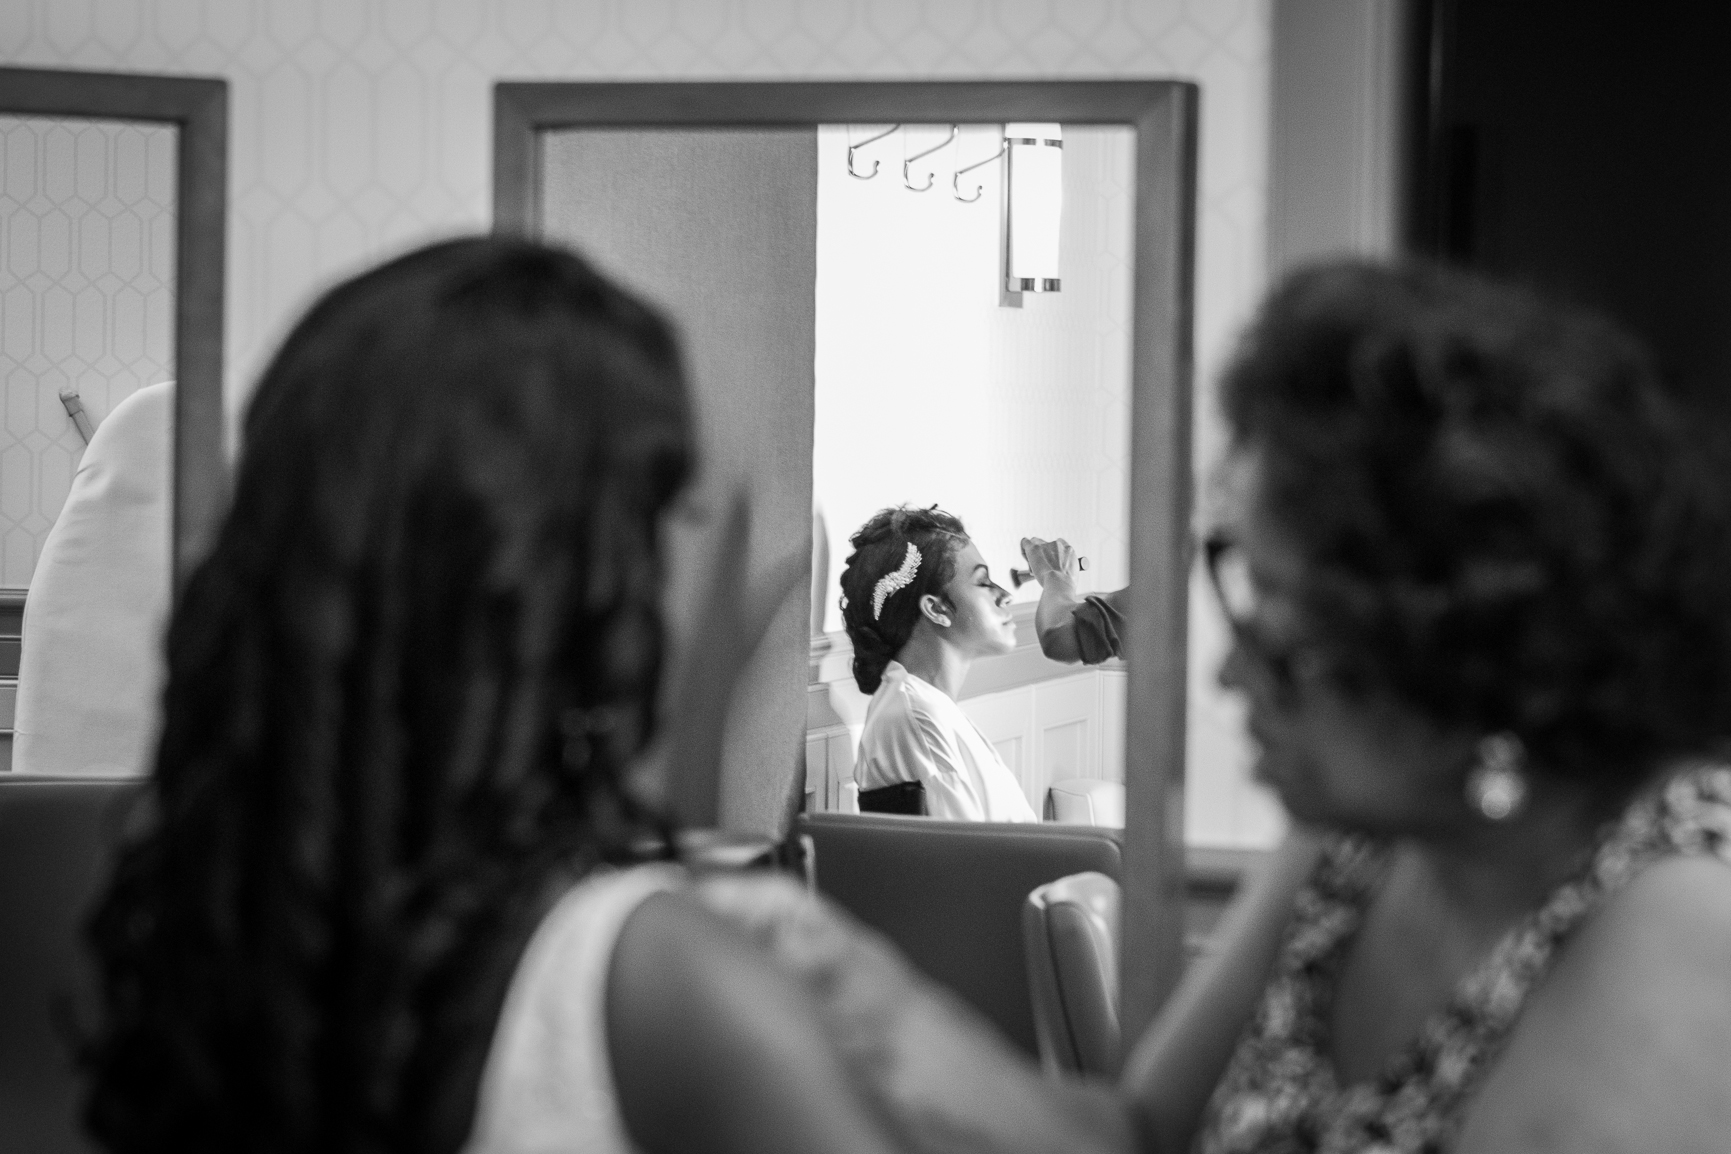 Noah's Morrisville wedding photographer - 101 studio llc -4.jpg